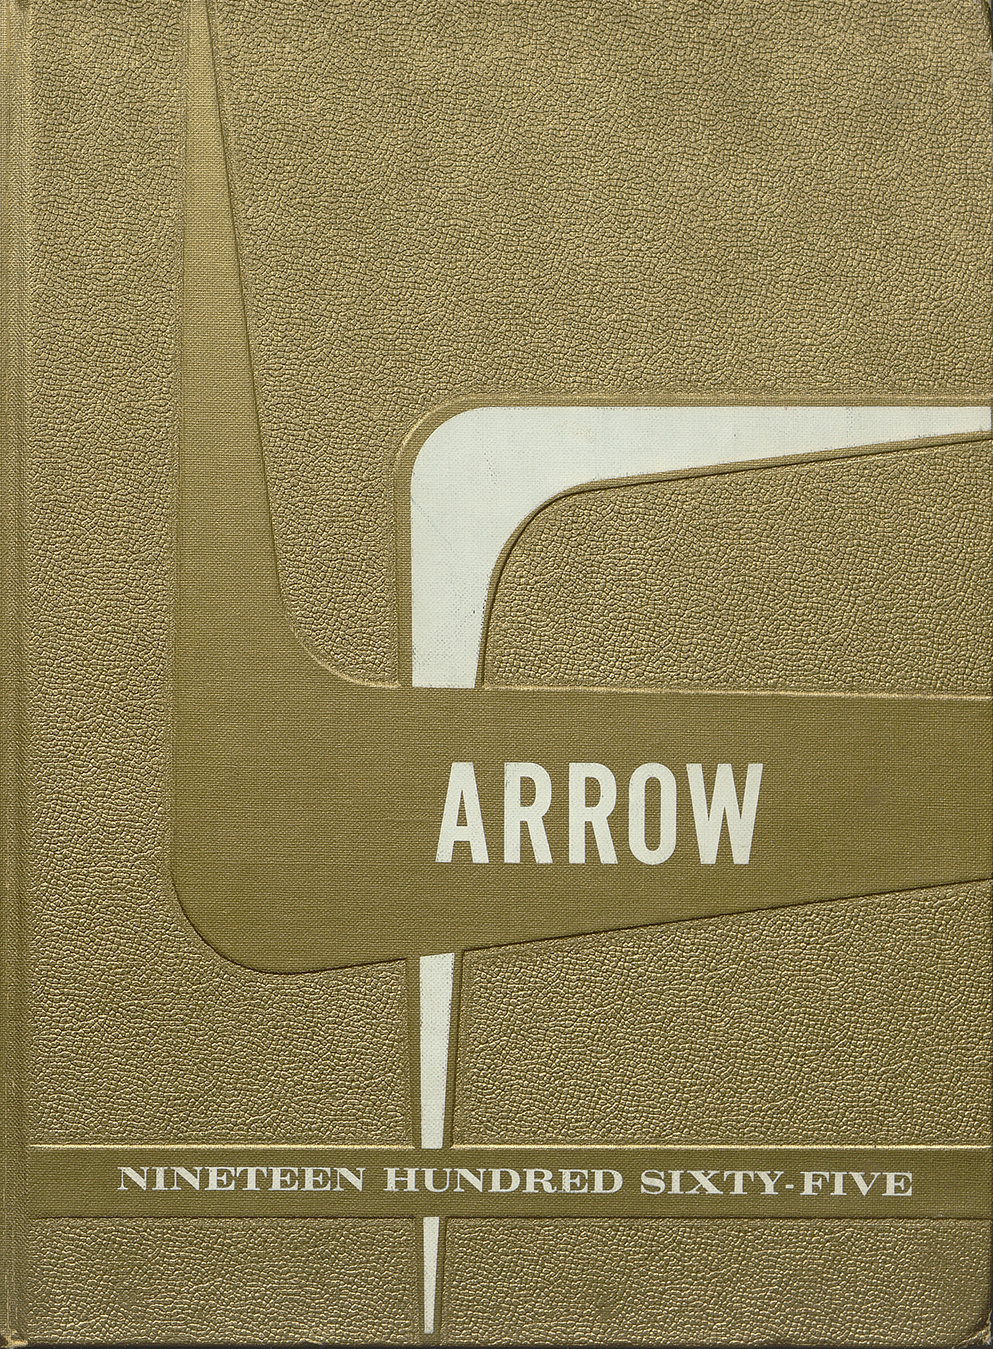 The Arrow 1965